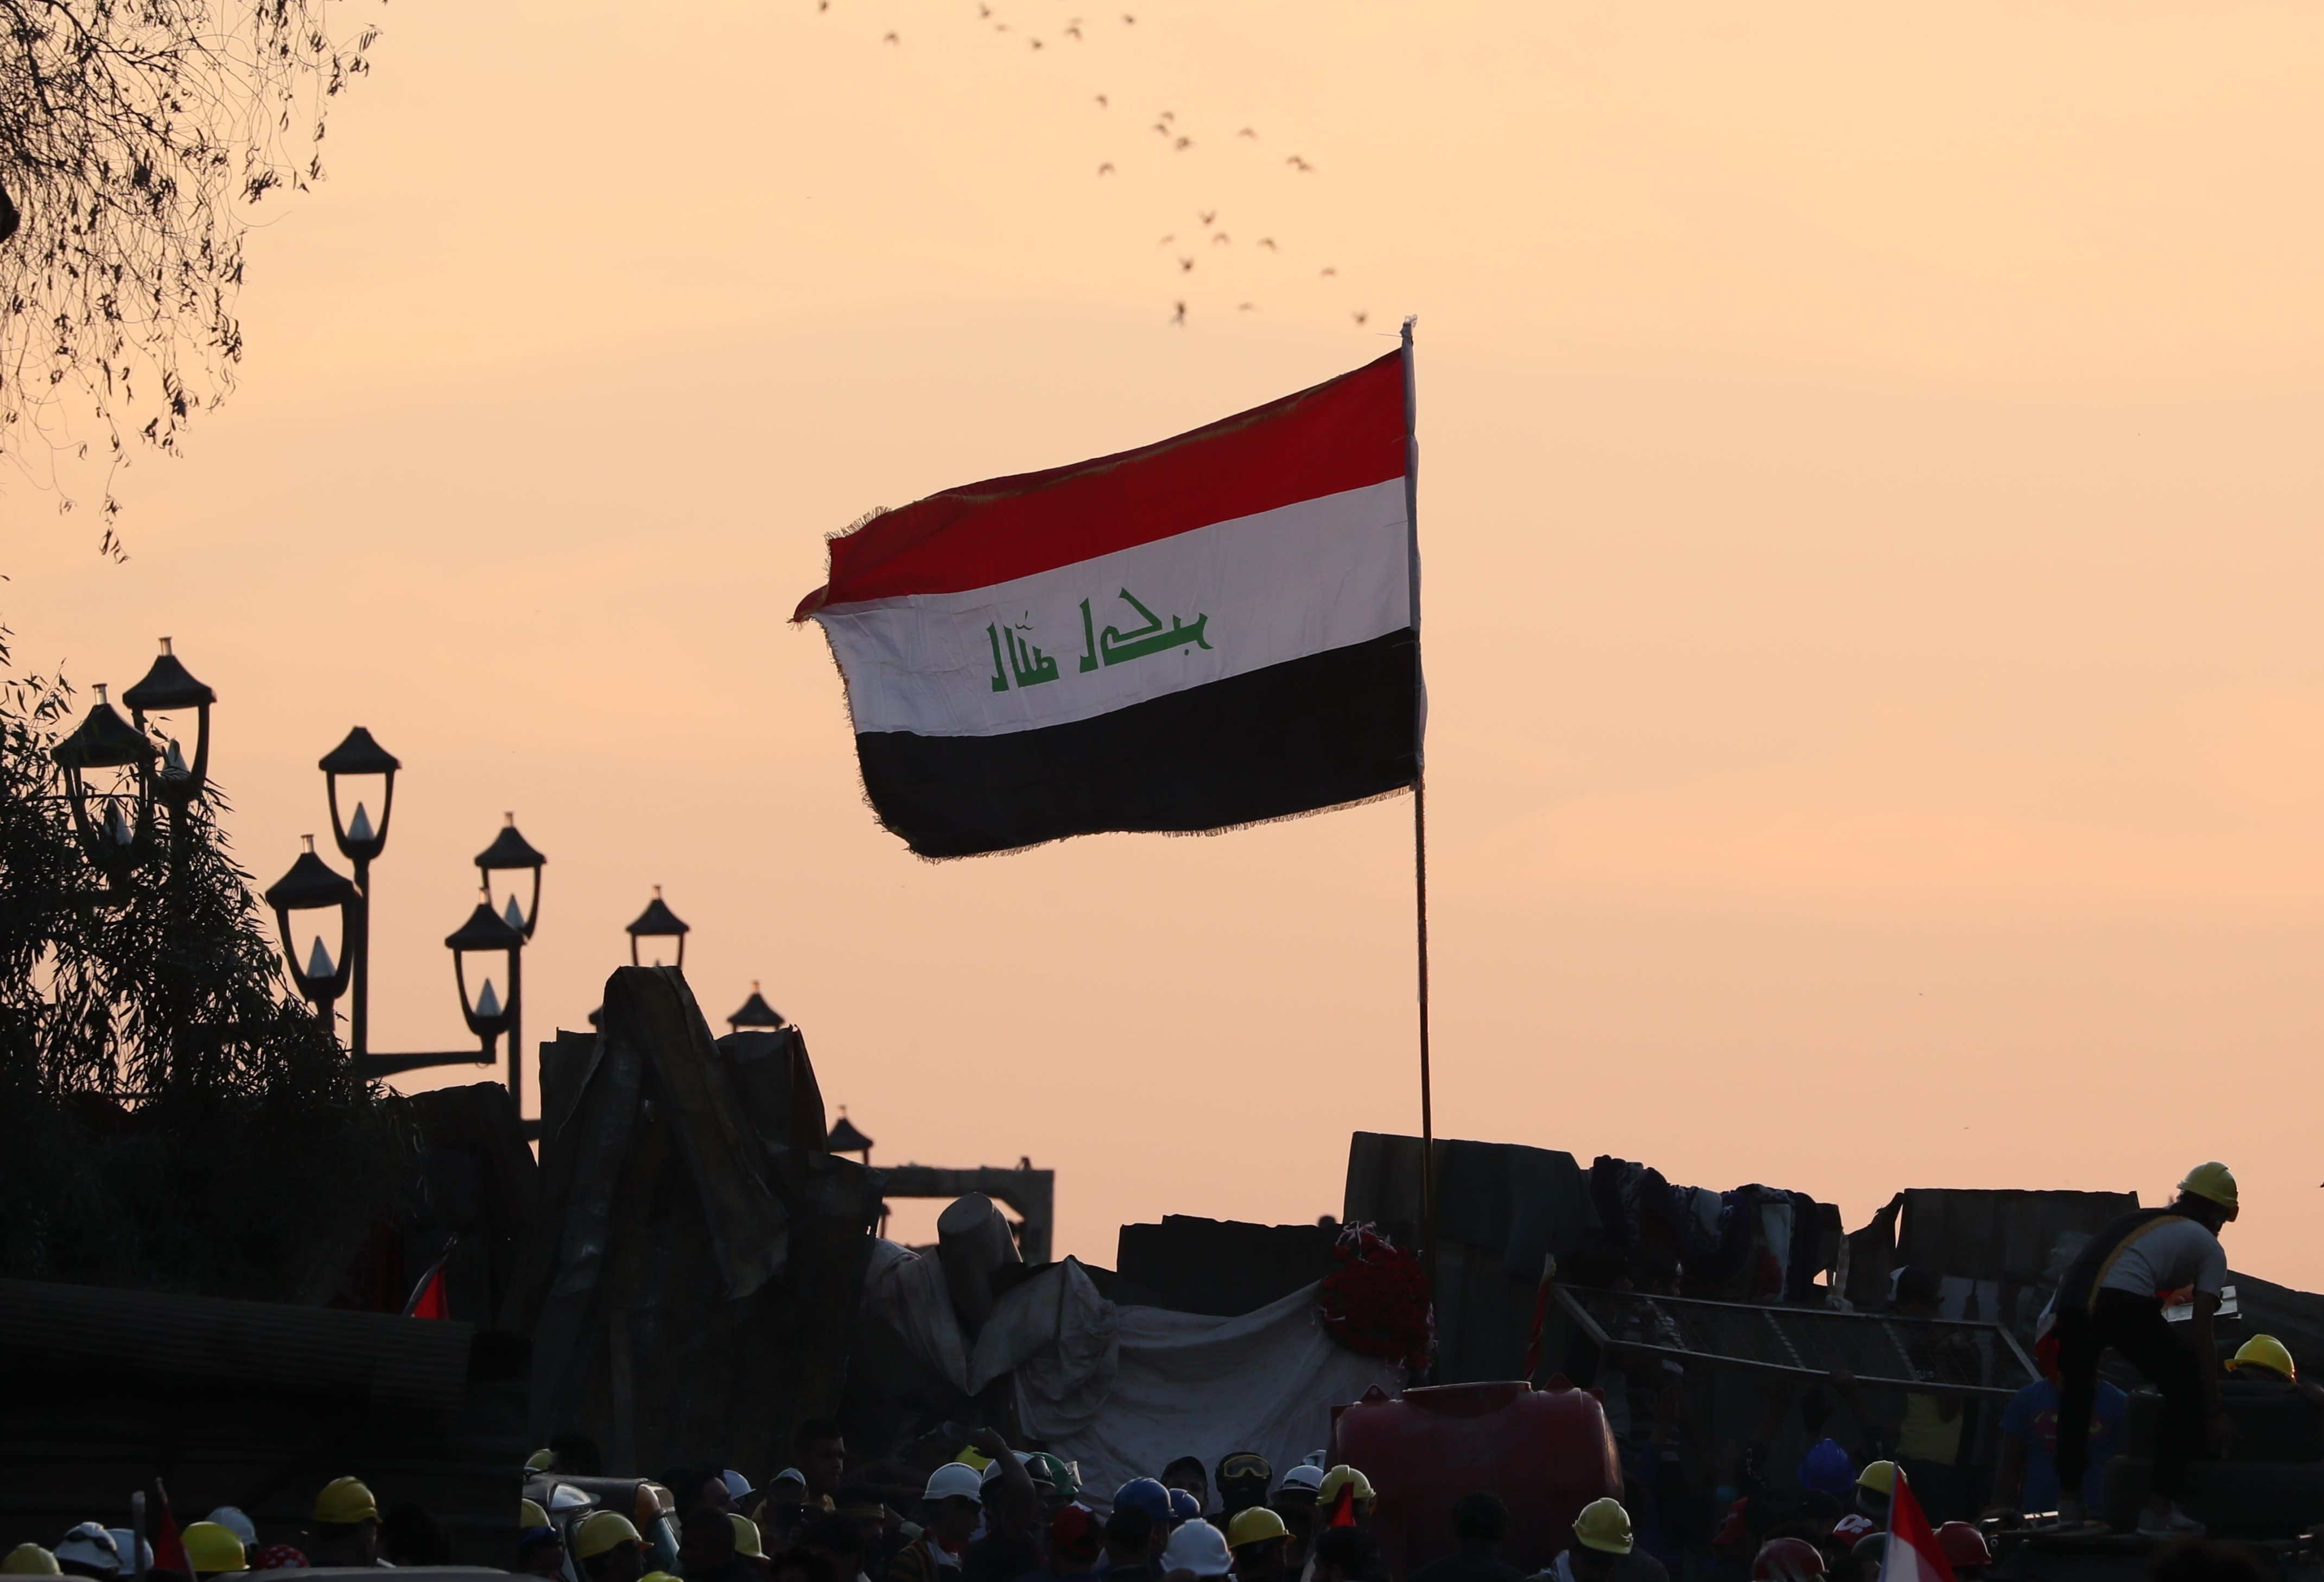 Anti-government protesters stand on barriers set up by Iraqi security forces in an effort to close a bridge leading to the Green Zone government area, during ongoing protests in Baghdad, Iraq, Tuesday, Nov. 5, 2019. (AP Photo/Hadi Mizban)